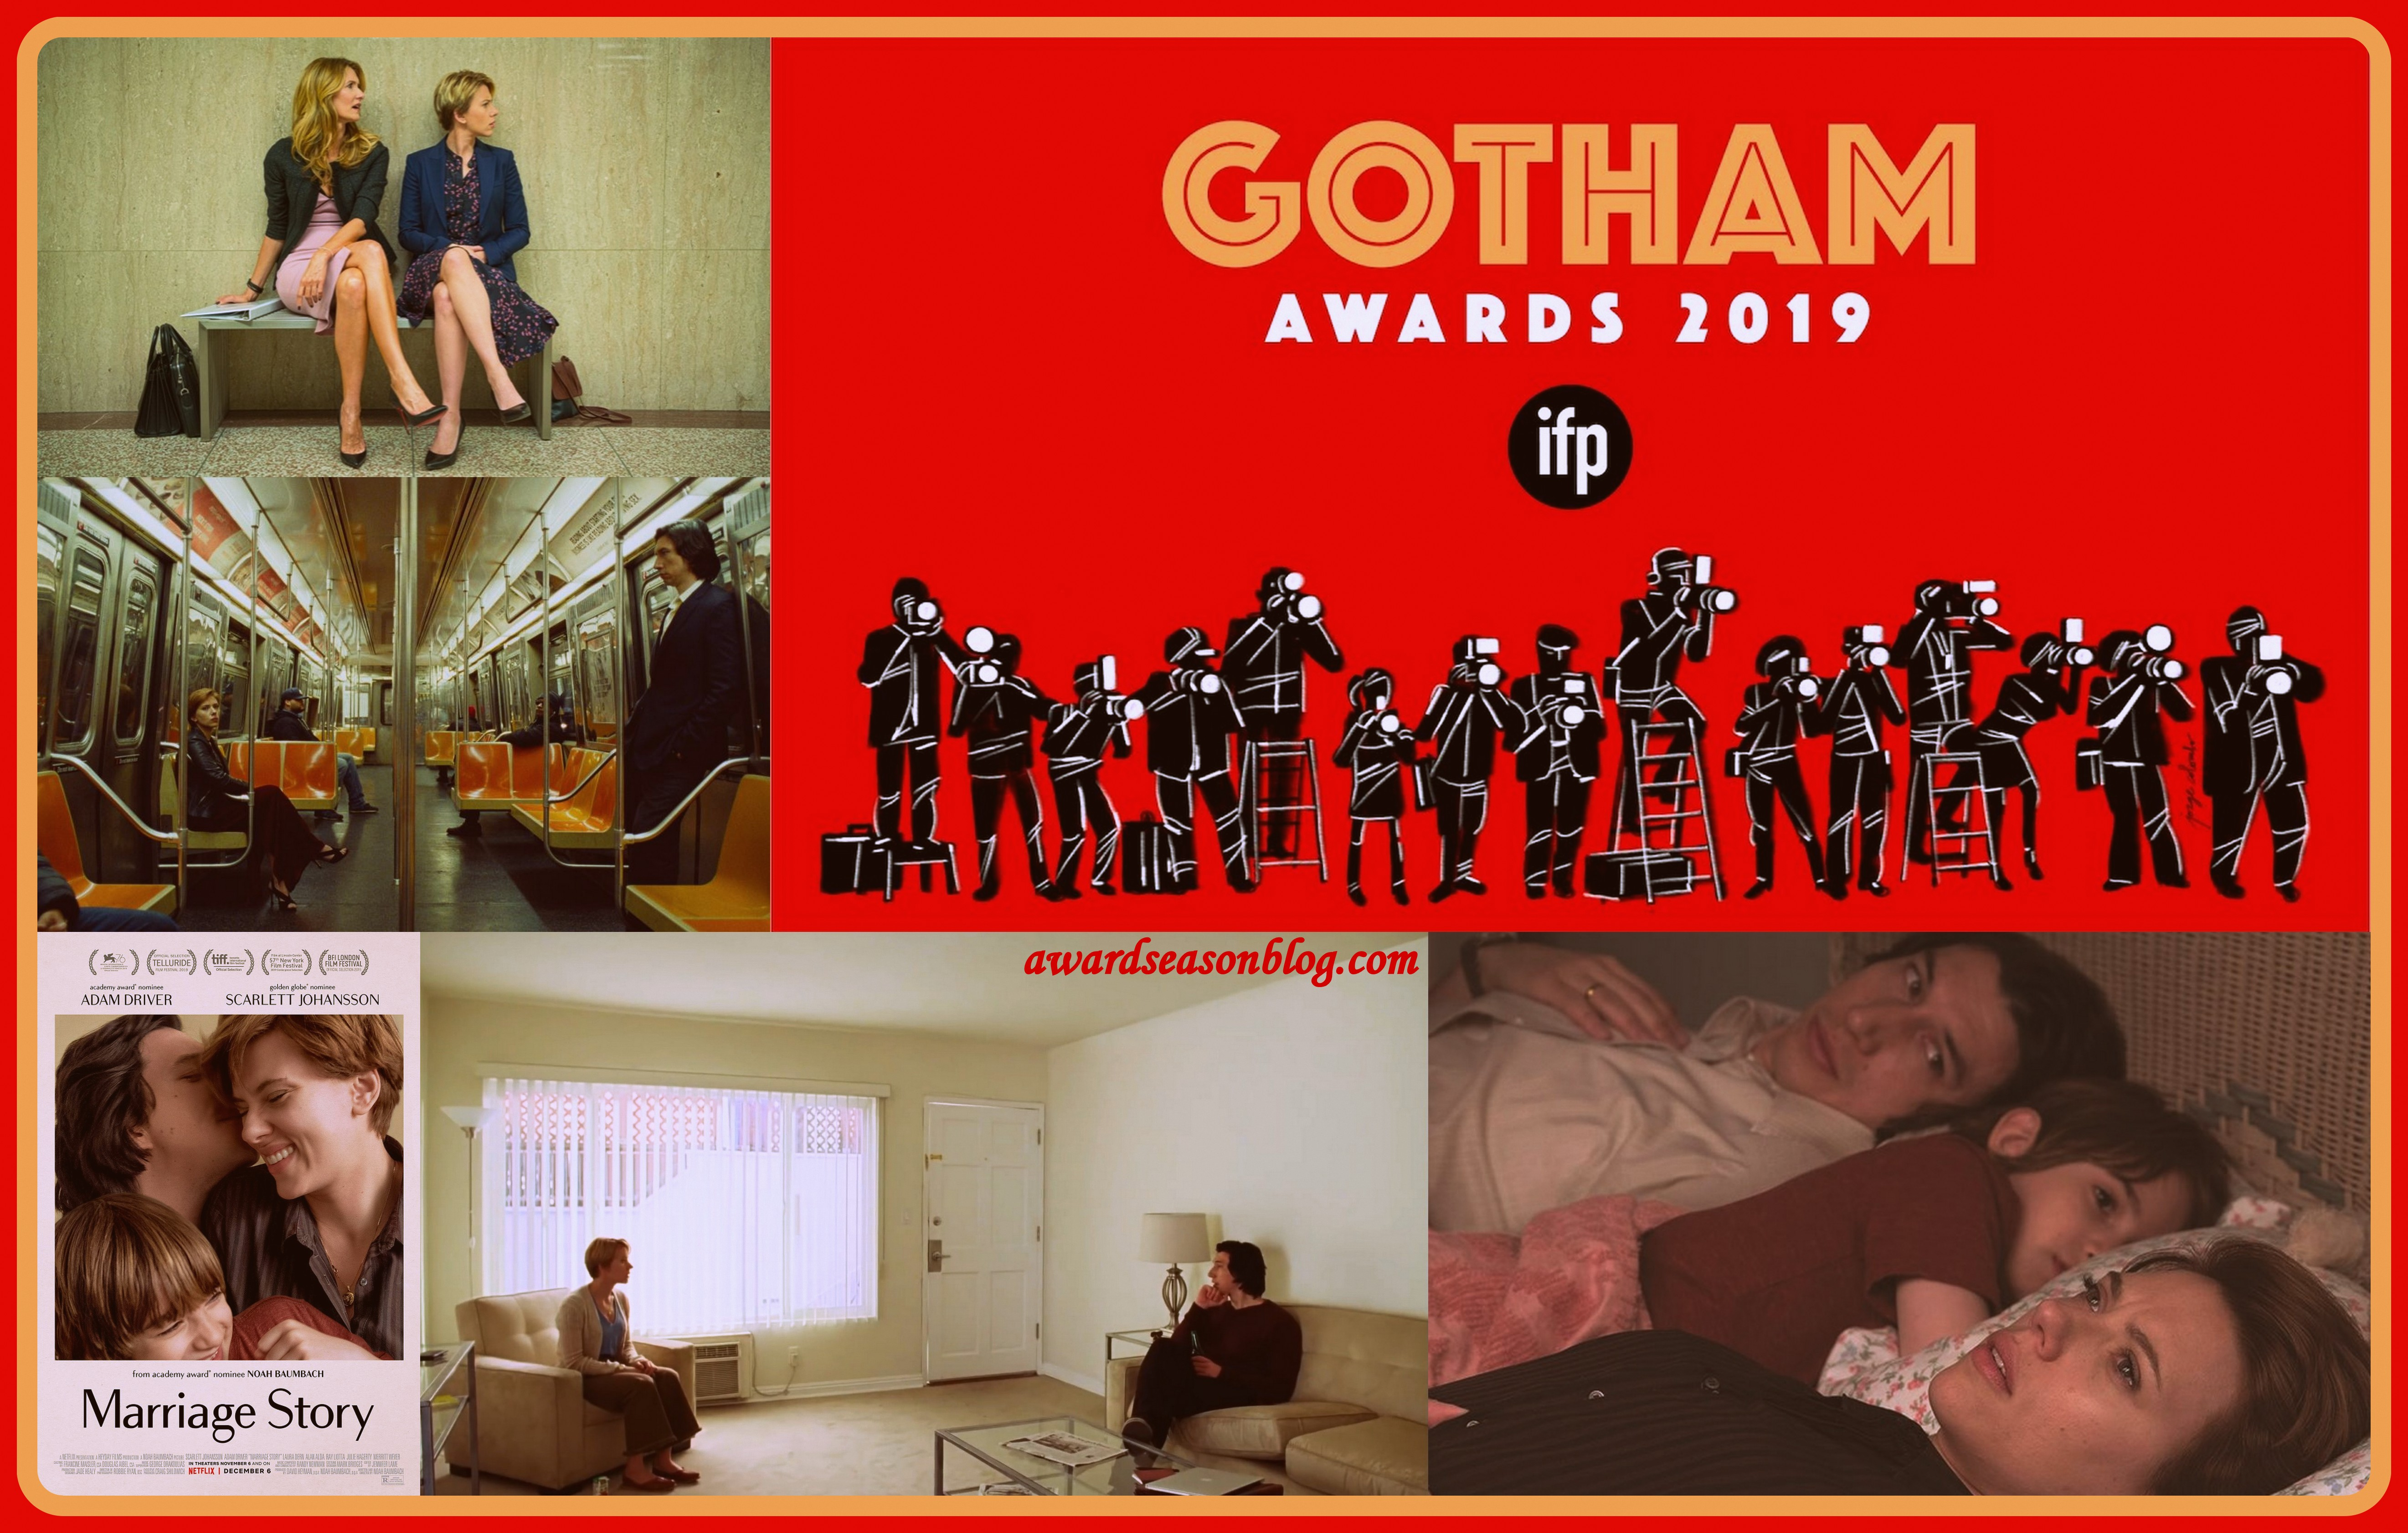 Marriage Story wins Gotham Awards 2019